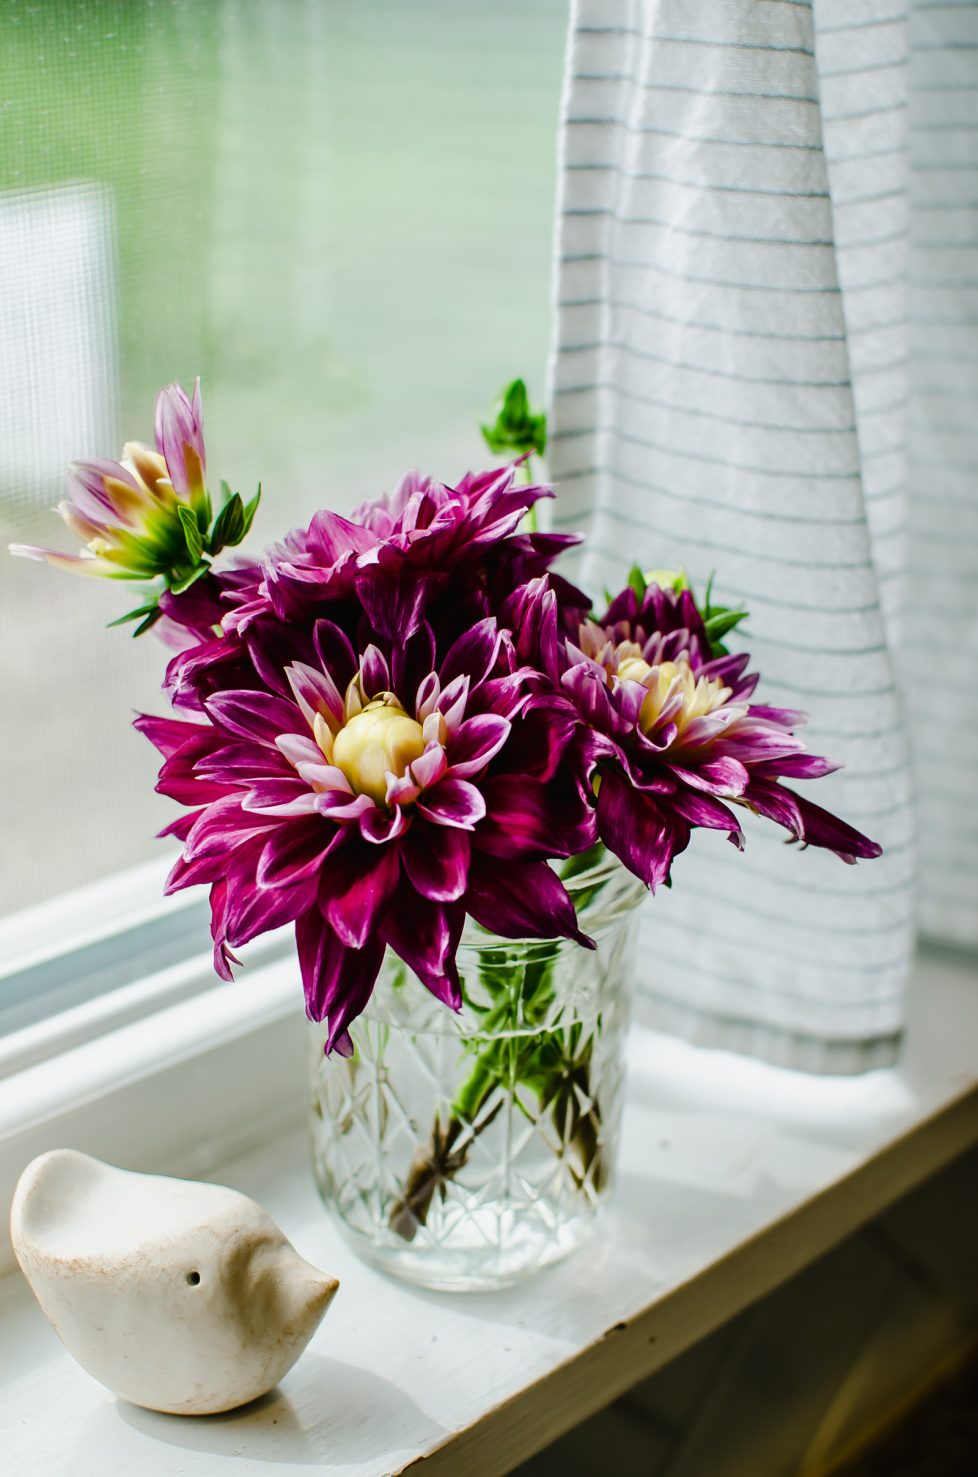 A photo of fuchsia dahlia flowers in a mason jar vase sitting on a window sill.